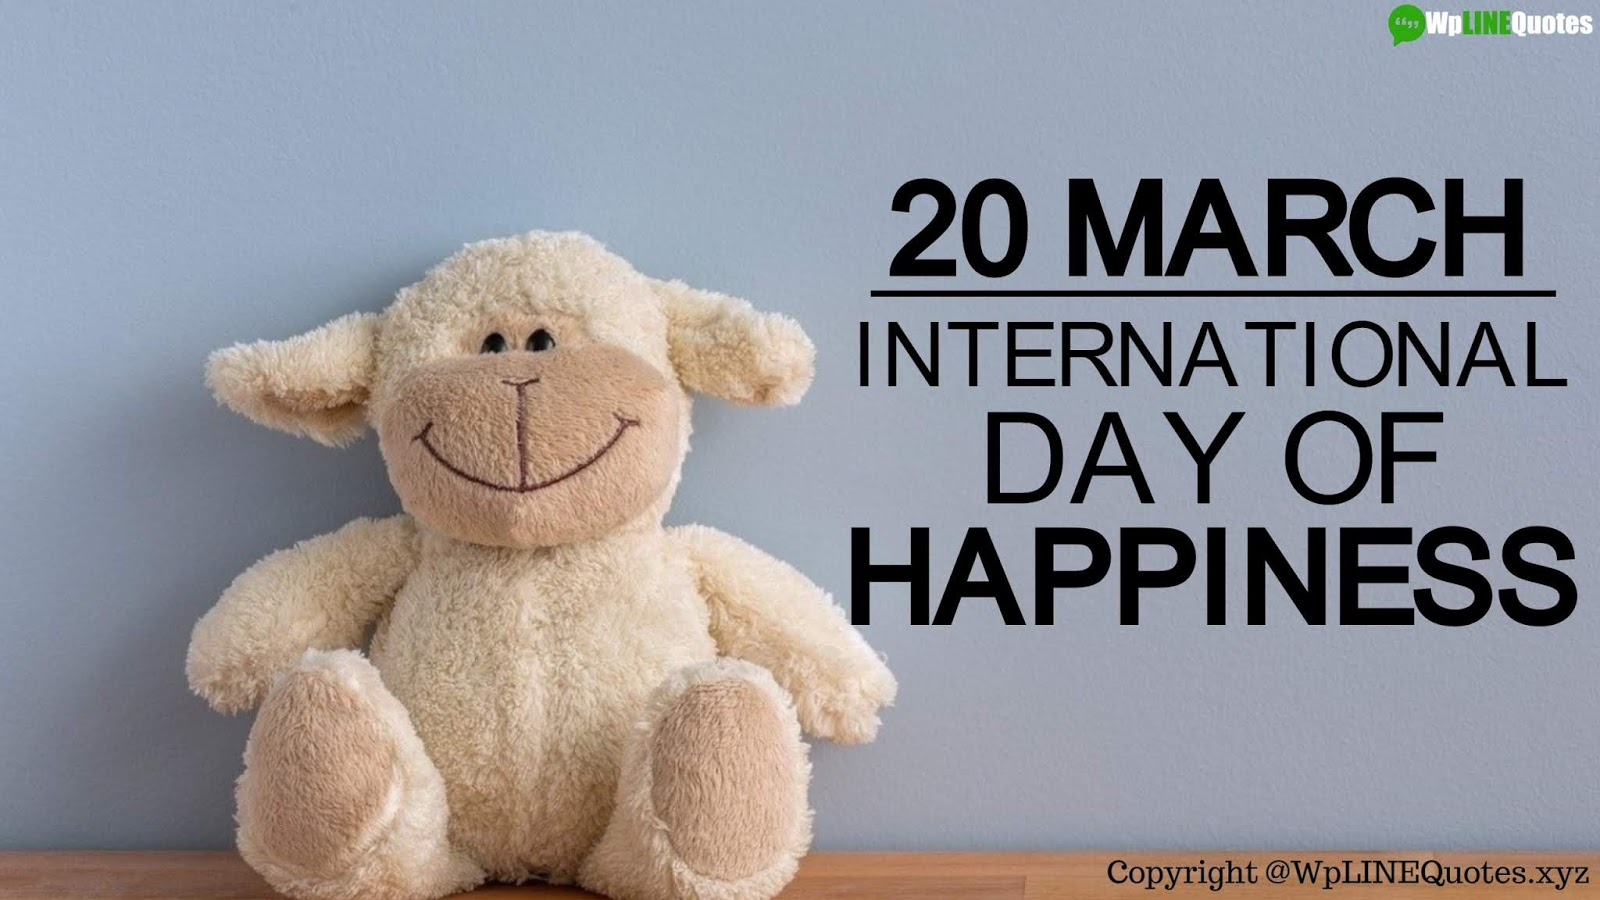 International Day Of Happiness Quotes, Wishes, Messages, Activities, Images, Posters